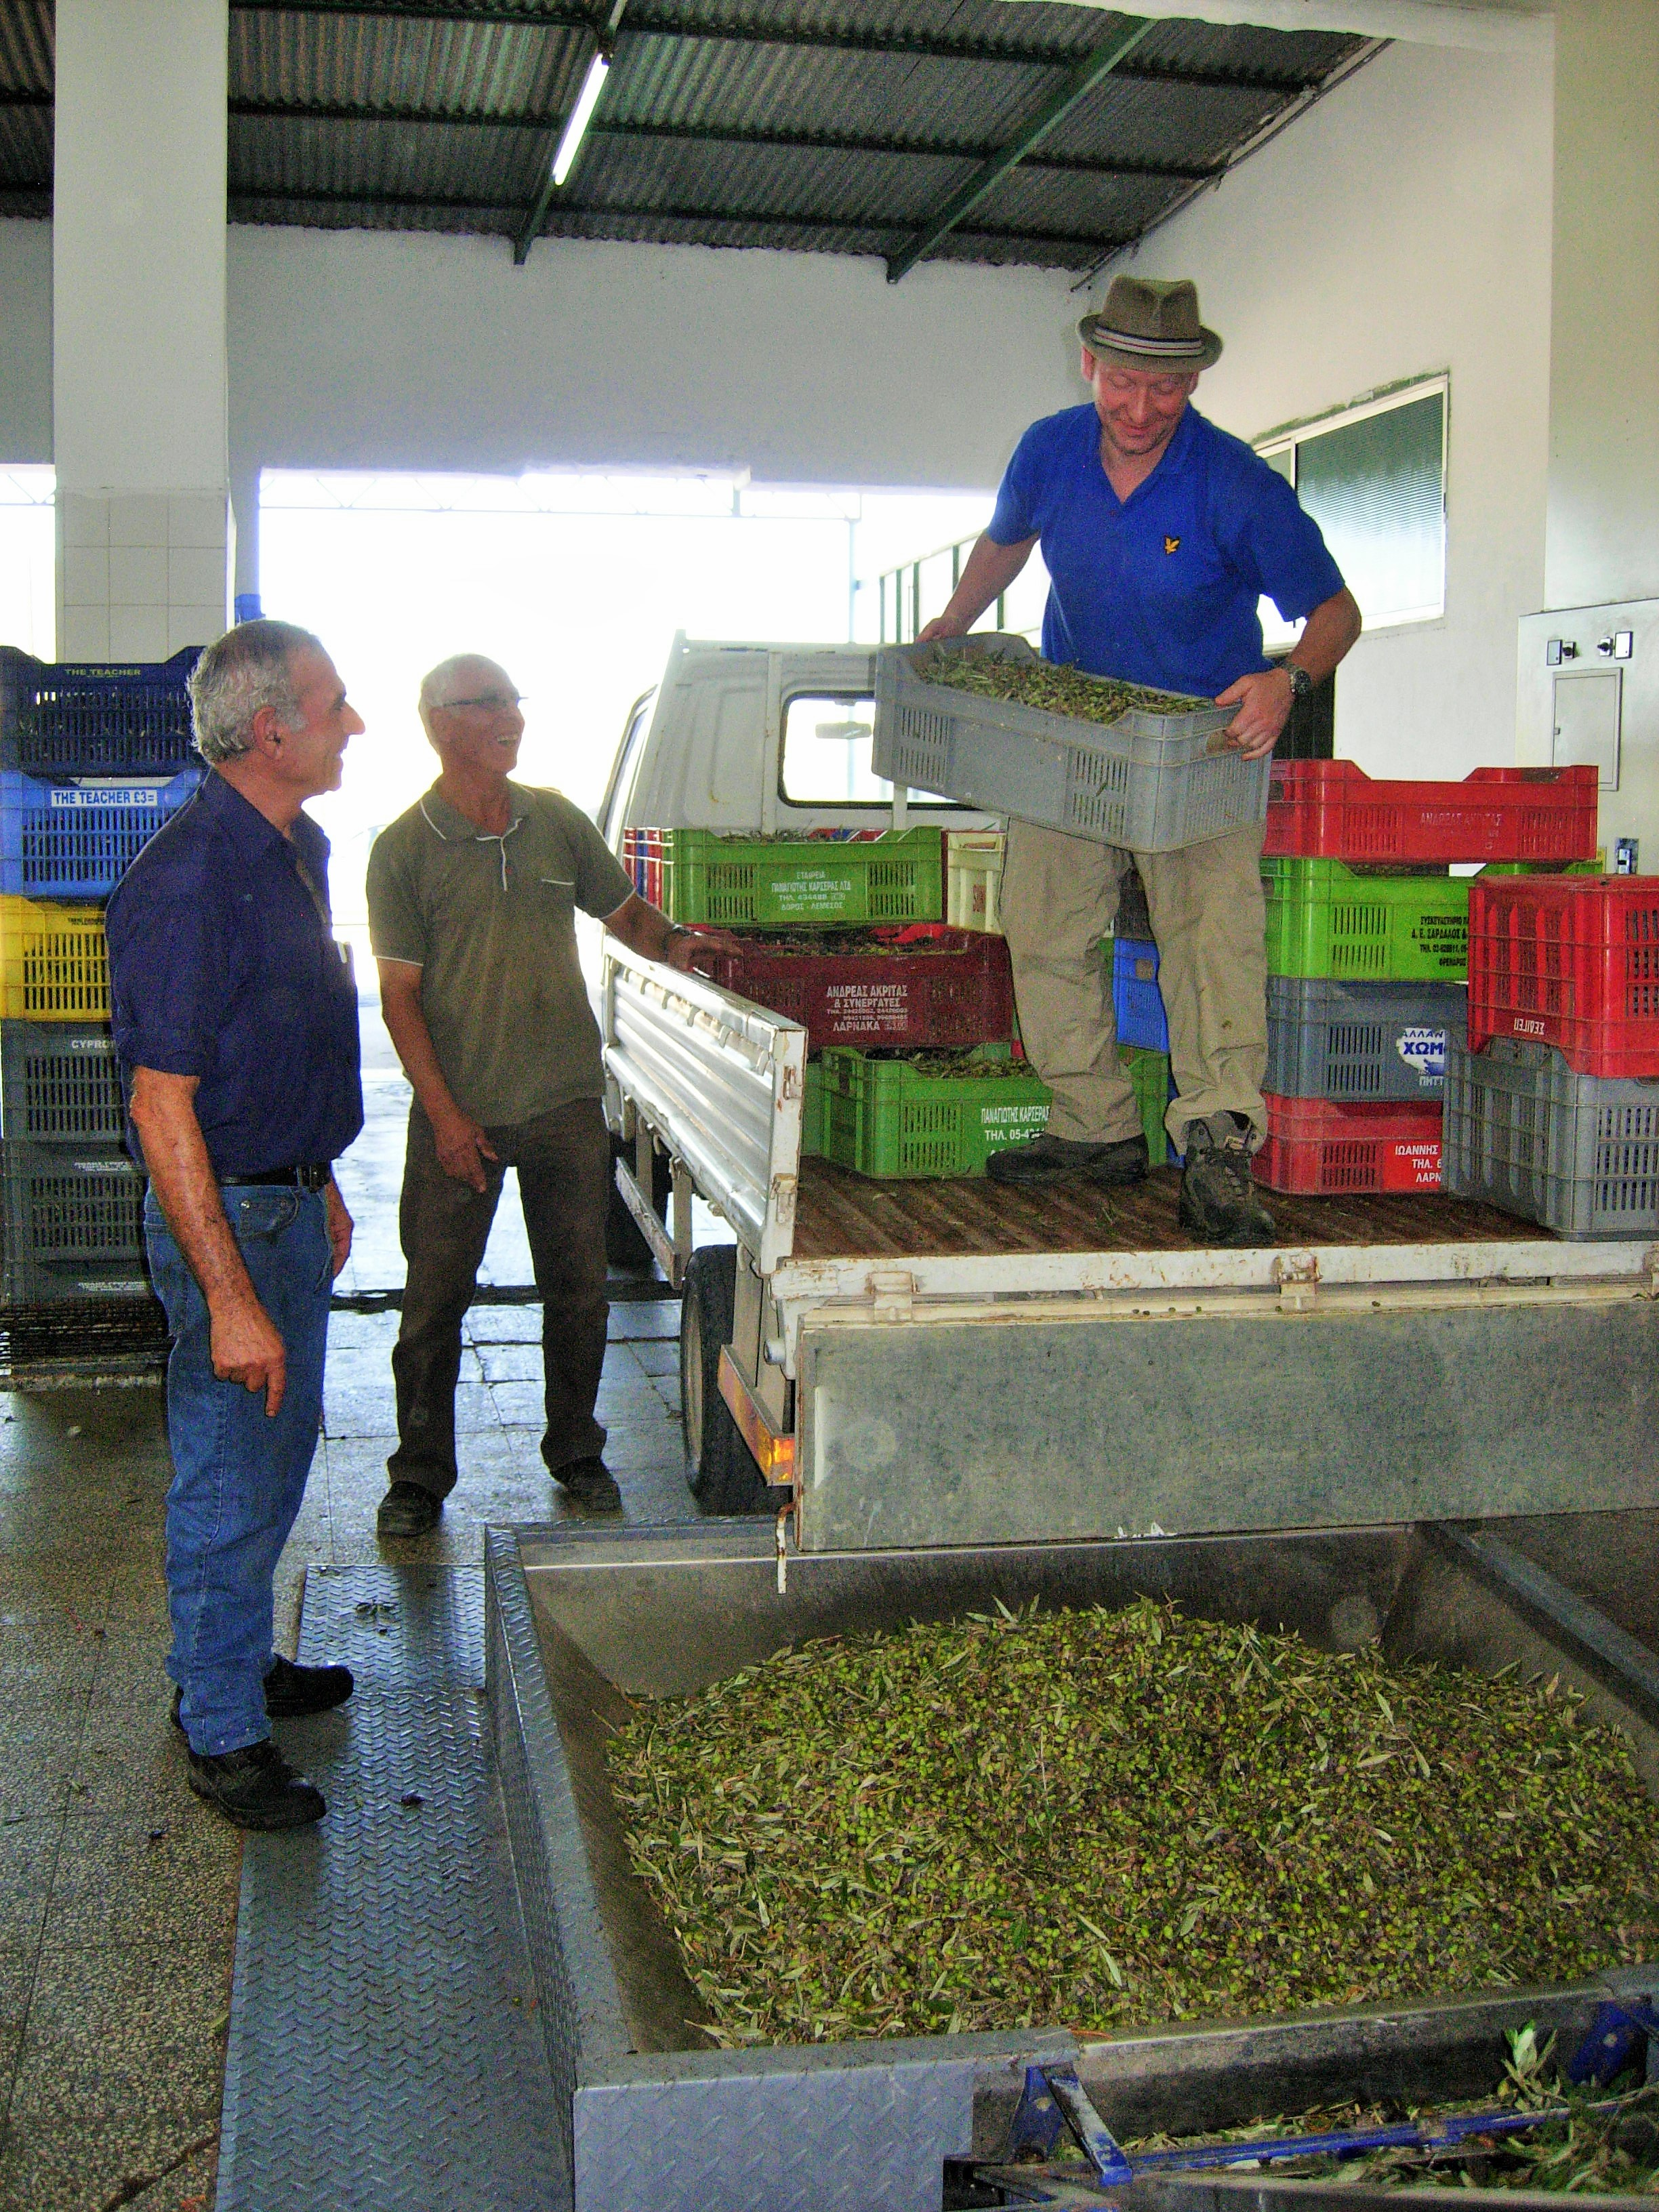 Loading the olives